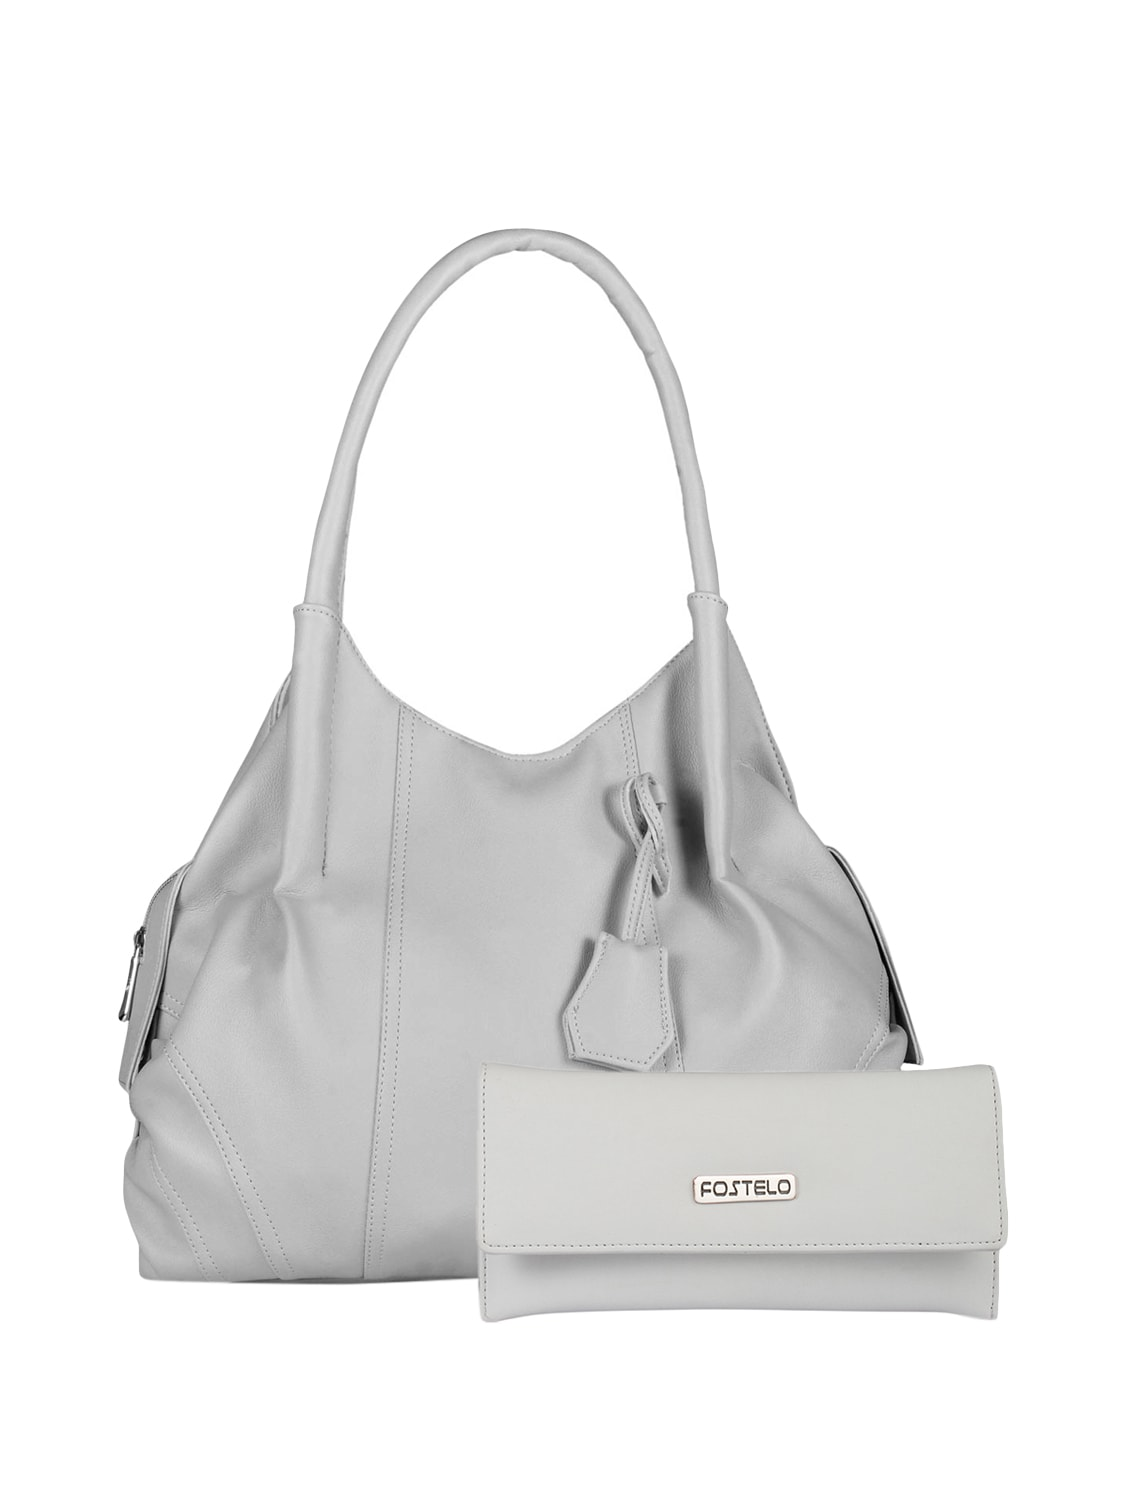 fc000fa1f23 Buy Grey Leatherette (pu) Combo Handbag for Women from Fostelo for ₹899 at  72% off | 2019 Limeroad.com